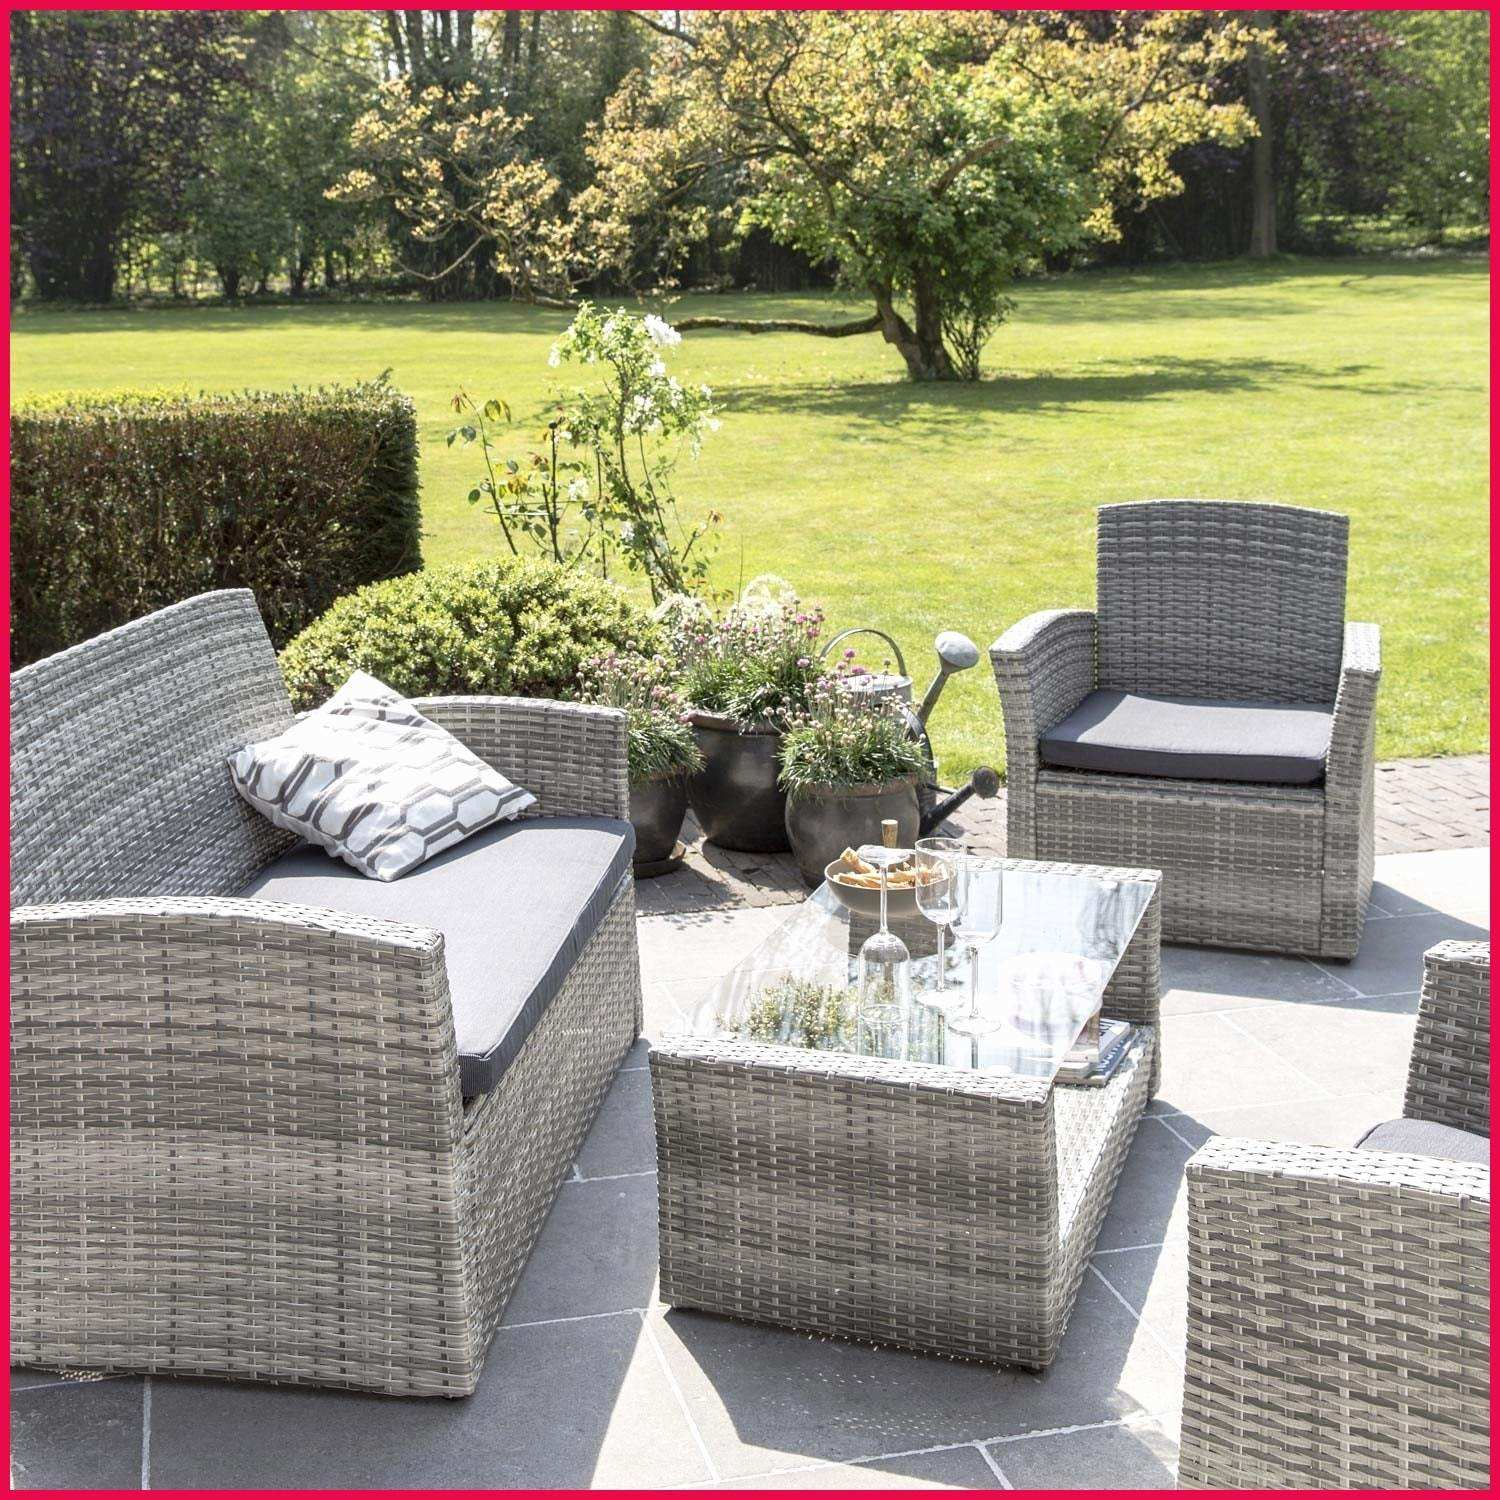 table de jardin bri arche inspirant frais de table plastique jardin schc2a8me idees de table of table de jardin bri arche 1